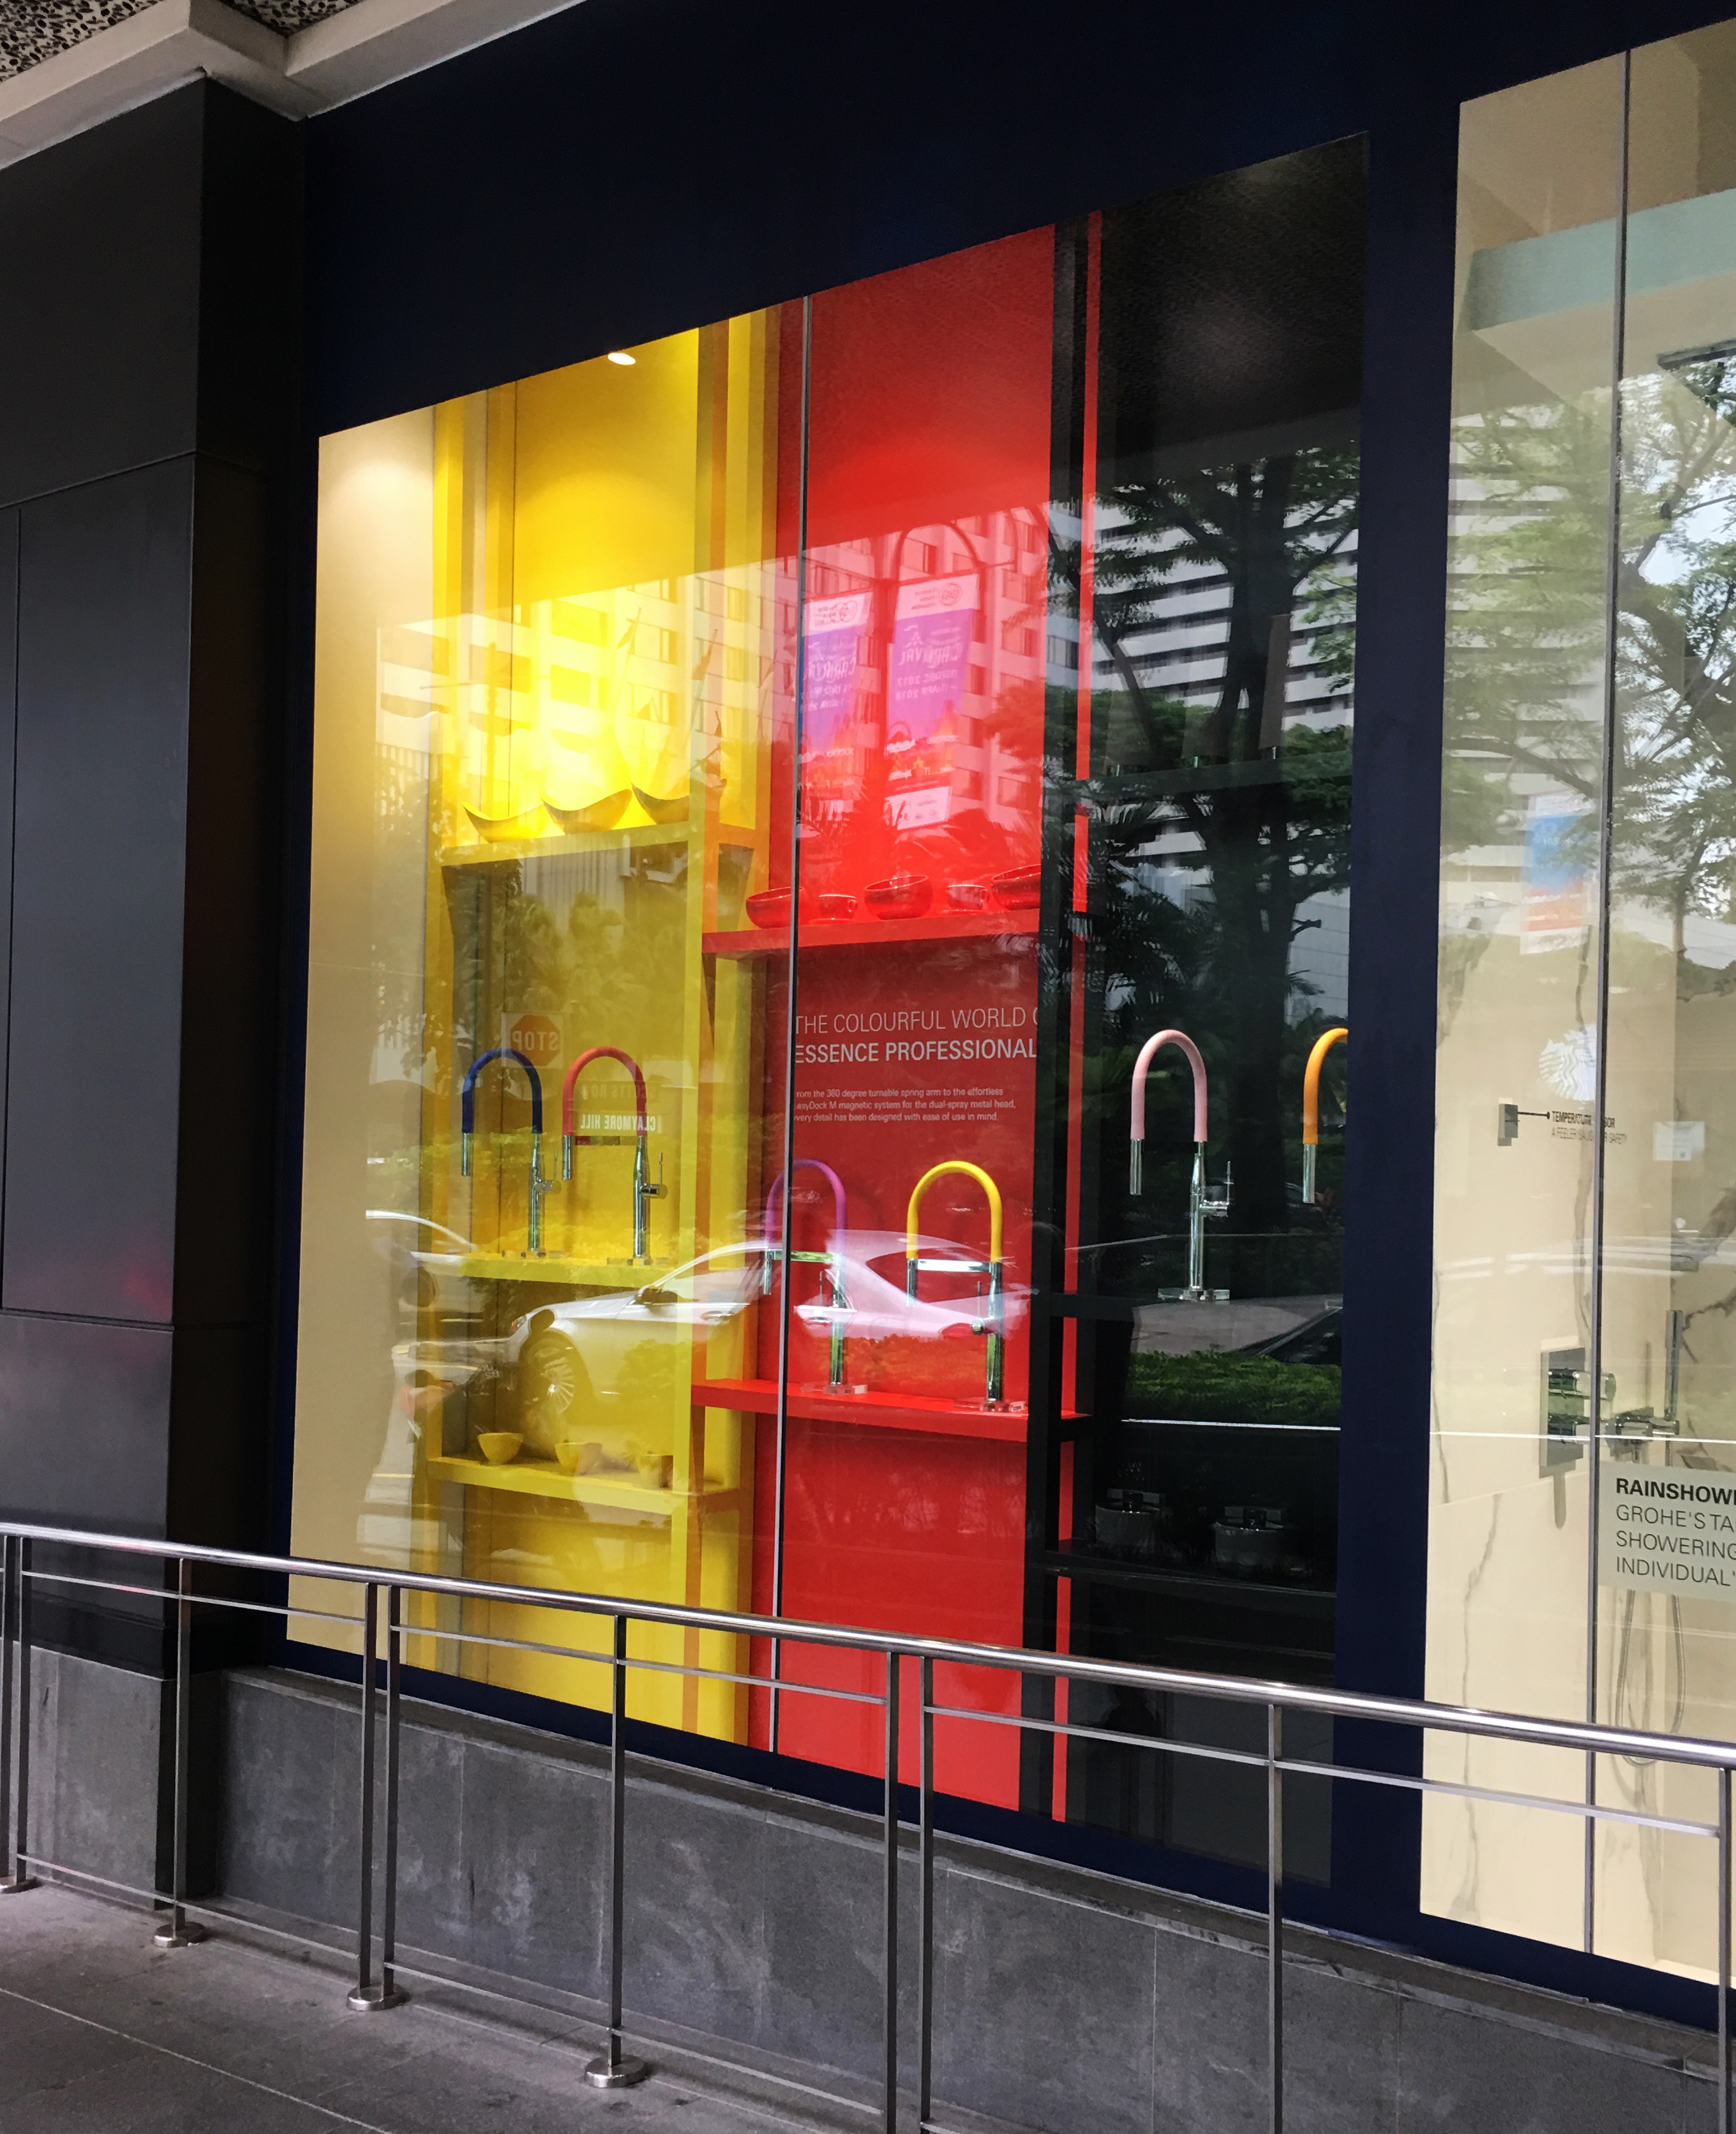 <p>When designing a window display for your product, you need to pick the one feature that resonate best with your customers.</p>